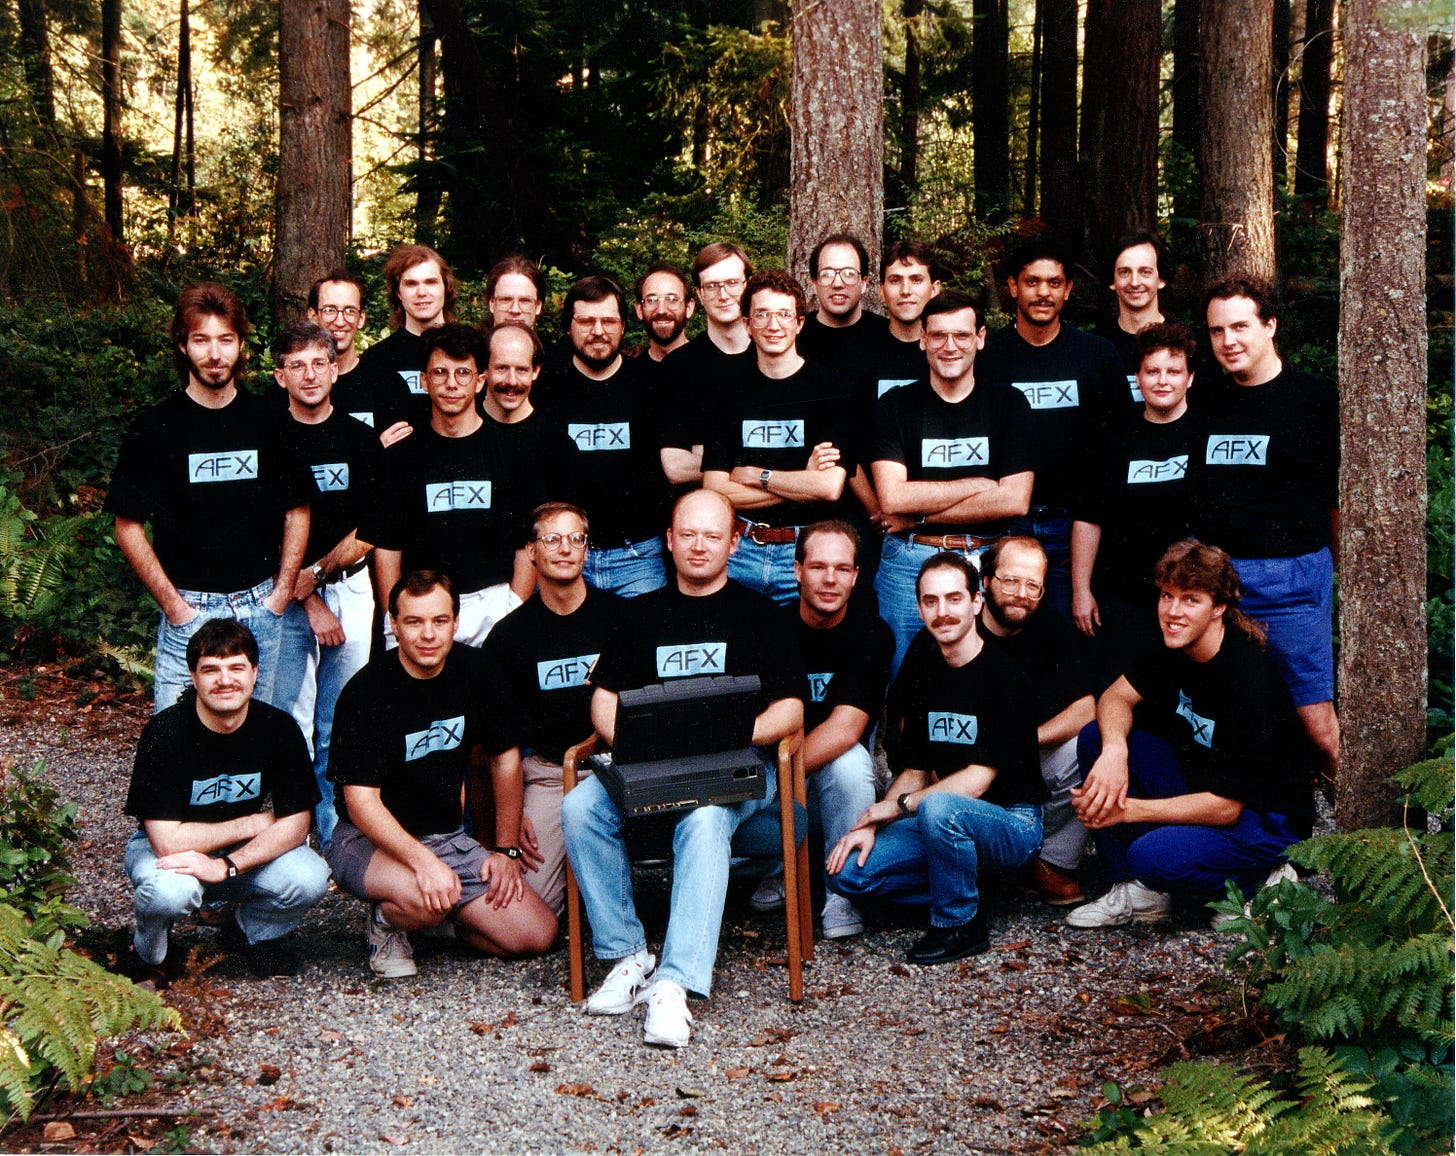 A group photo of 26 members of the AF team.